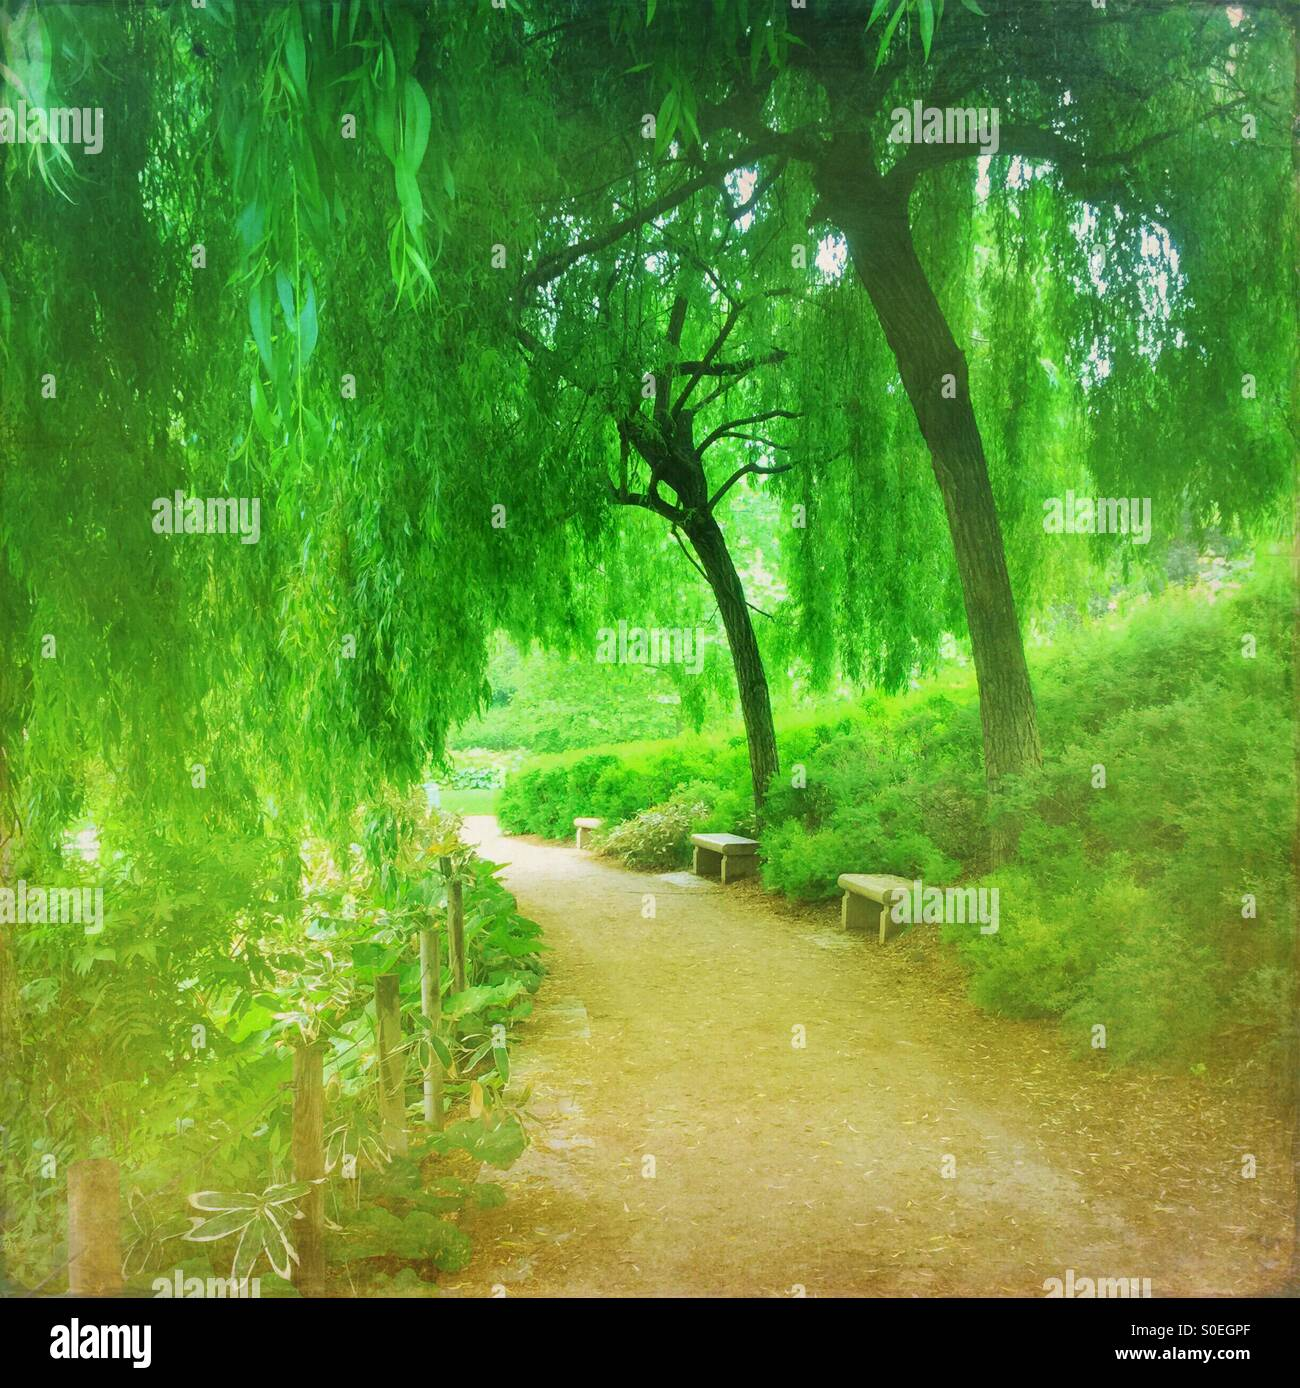 Verdant green Parc de Bercy with weeping willow trees and fresh Spring foliage in Paris, France. Vintage textureStock Photo